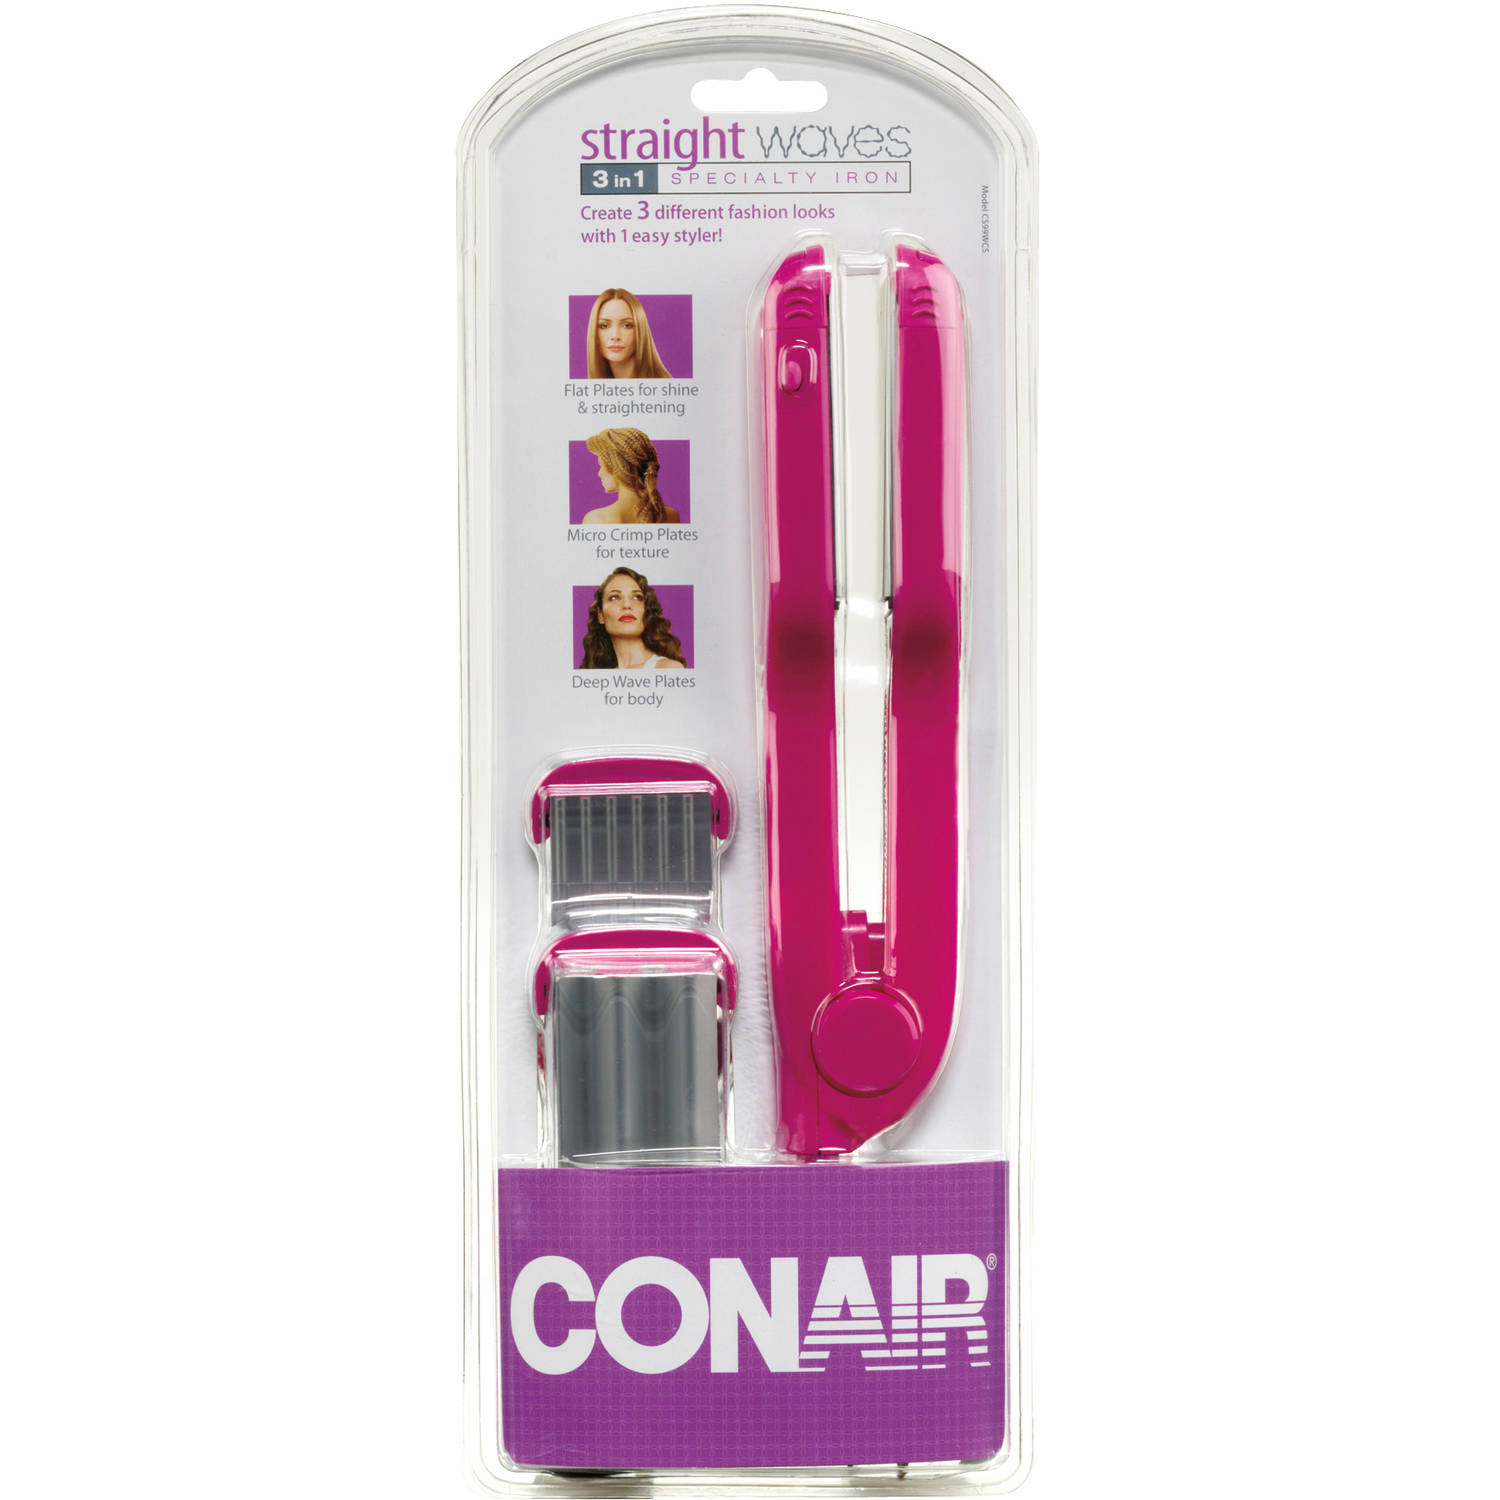 Conair Straight Waves 3 in 1 Specialty Iron